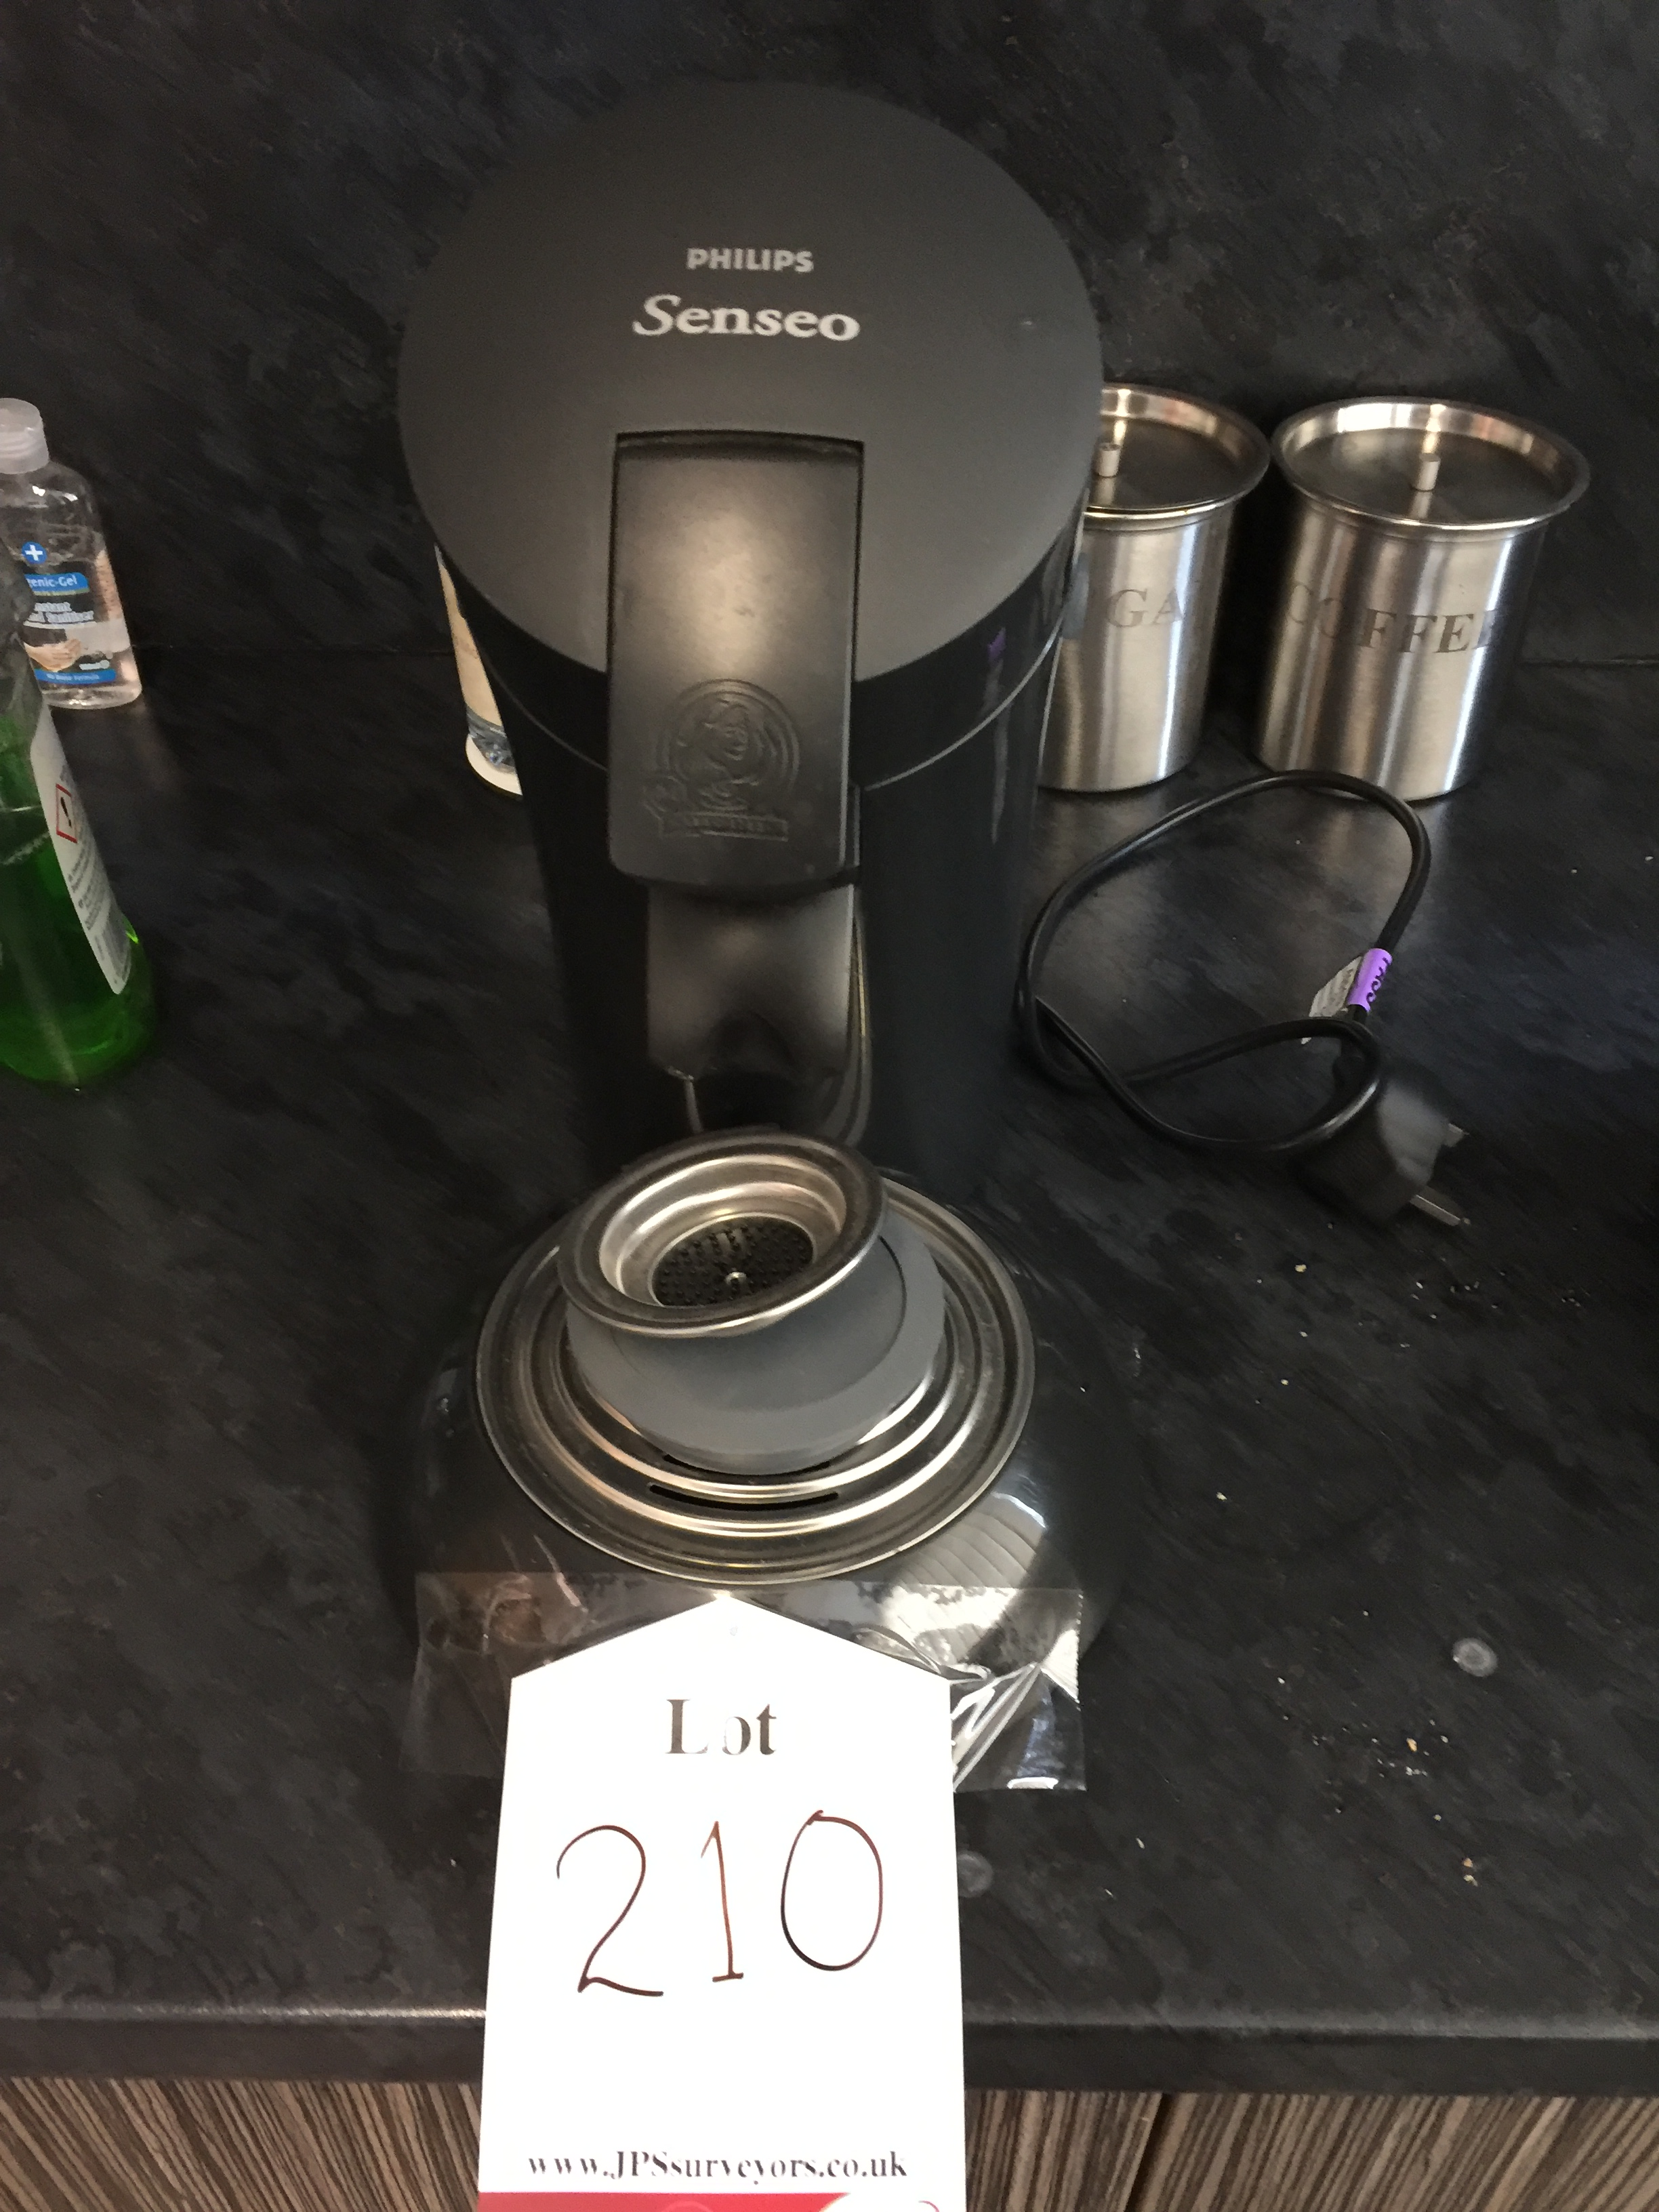 Philips Senseo coffee machineThis lot is suitable for the following collection types:COLLECTION O